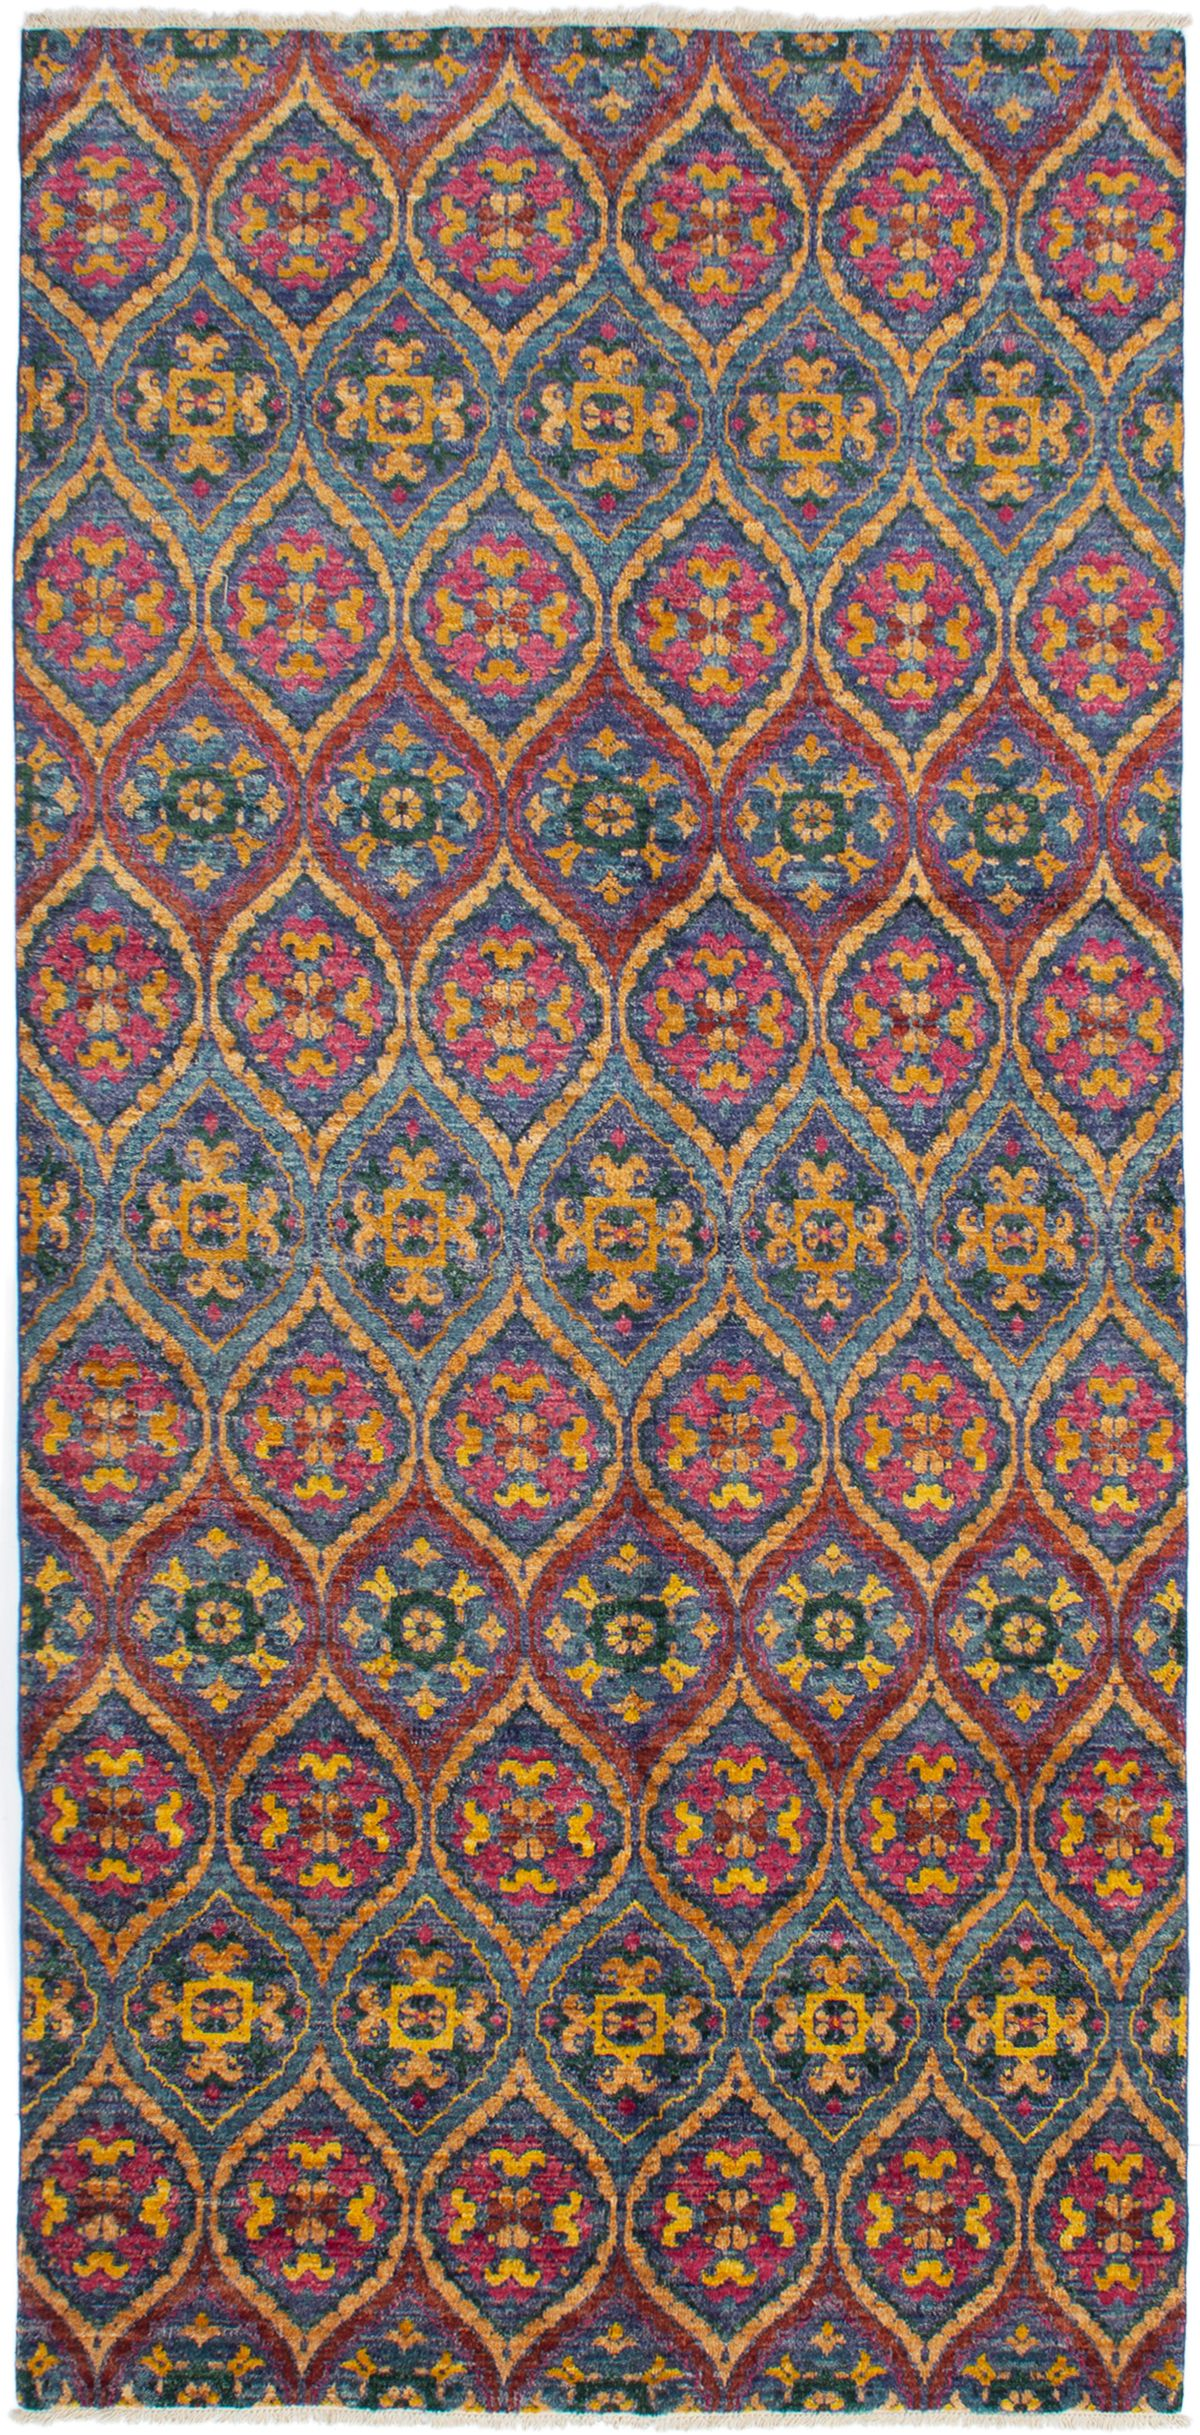 """Hand-knotted Shalimar Burgundy, Navy Blue Wool Rug 6'0"""" x 12'4"""" Size: 6'0"""" x 12'4"""""""